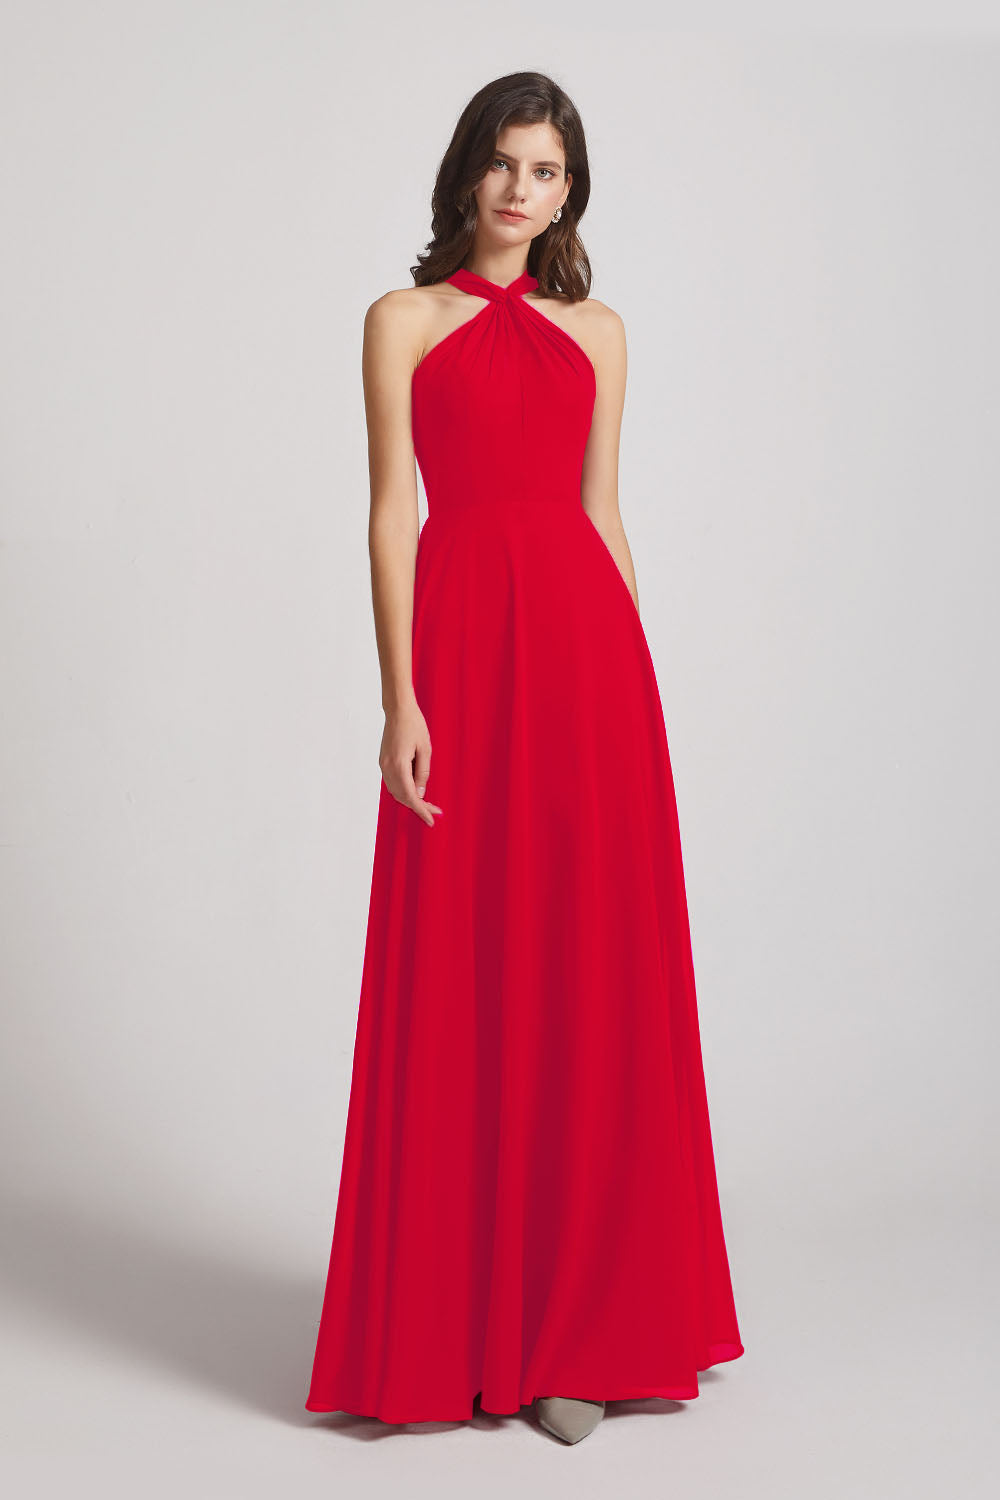 Alfa Bridal Red Floor Length Chiffon Bridesmaid Dresses with Criss Cross Neckline (AF0113)